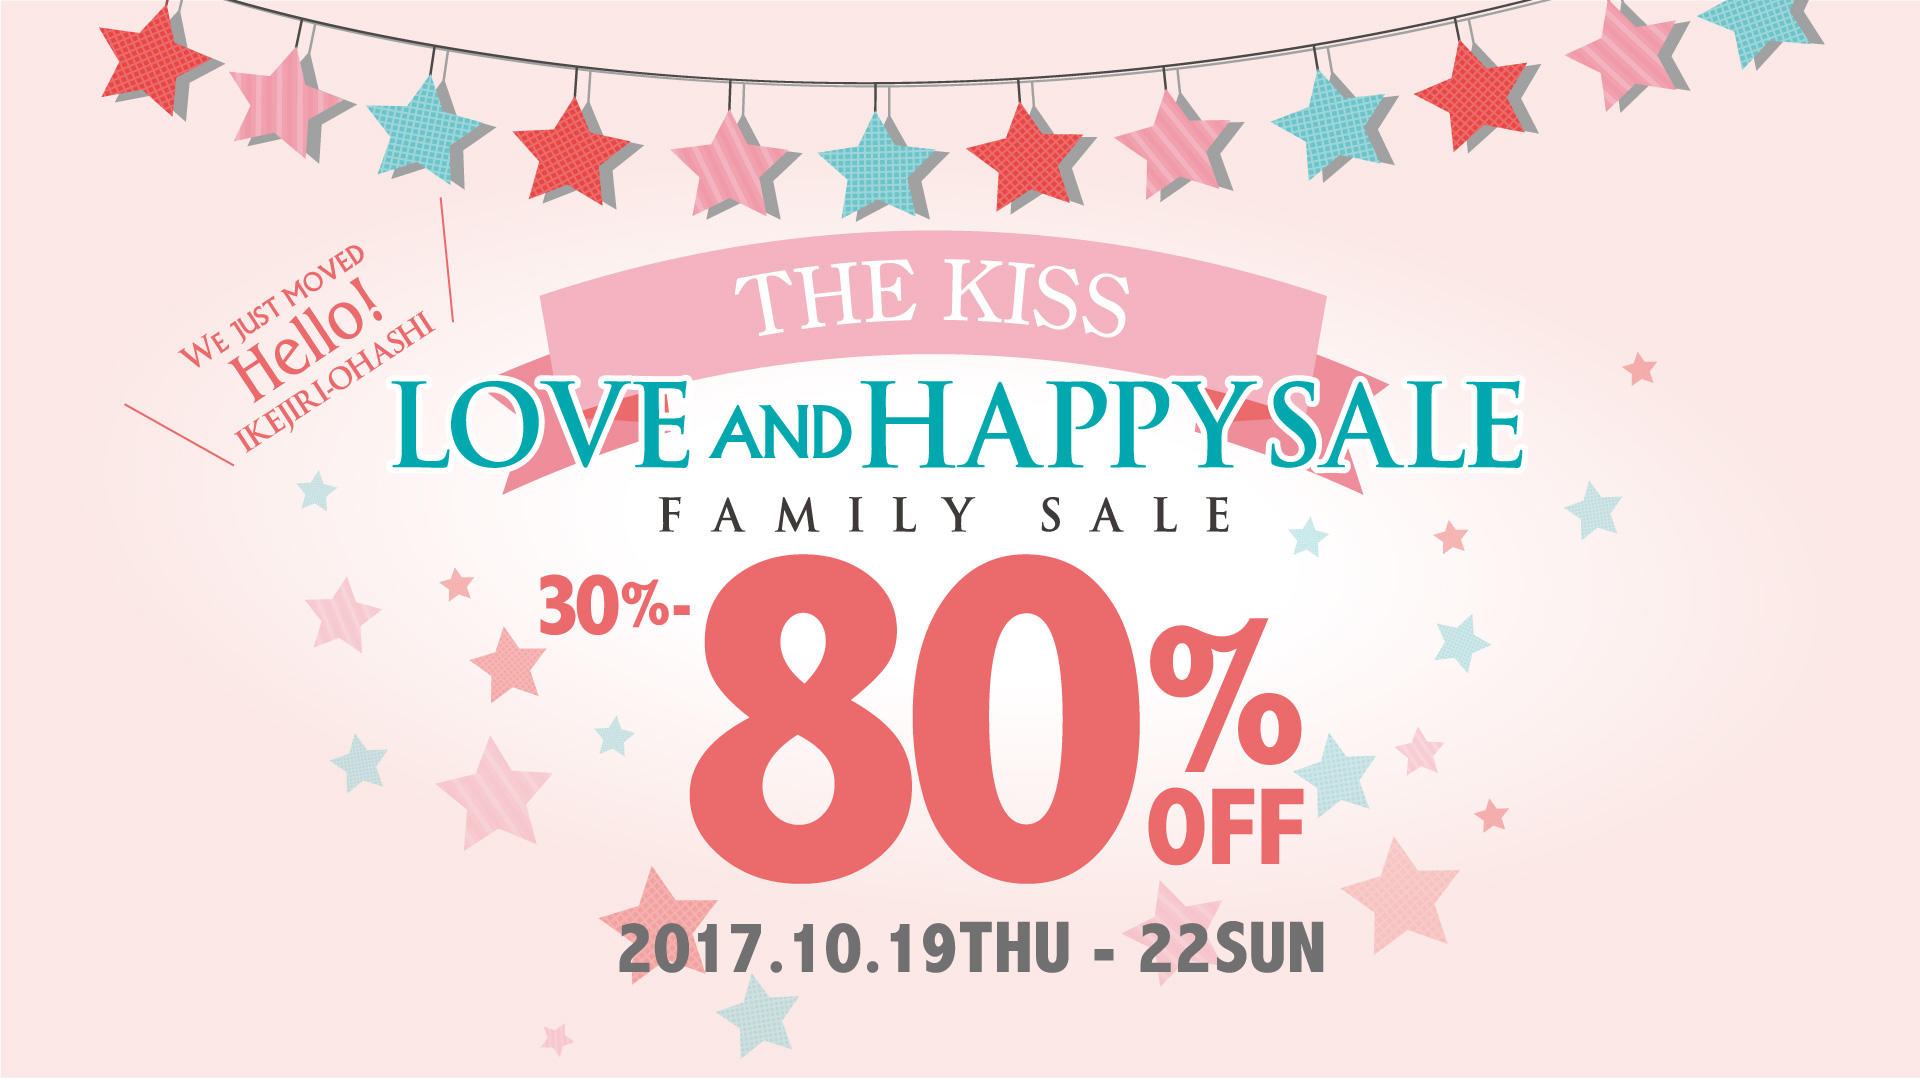 【FAMILY SALE】最大80%OFF!!ザ・キッス ラブ&ハッピーセール開催!